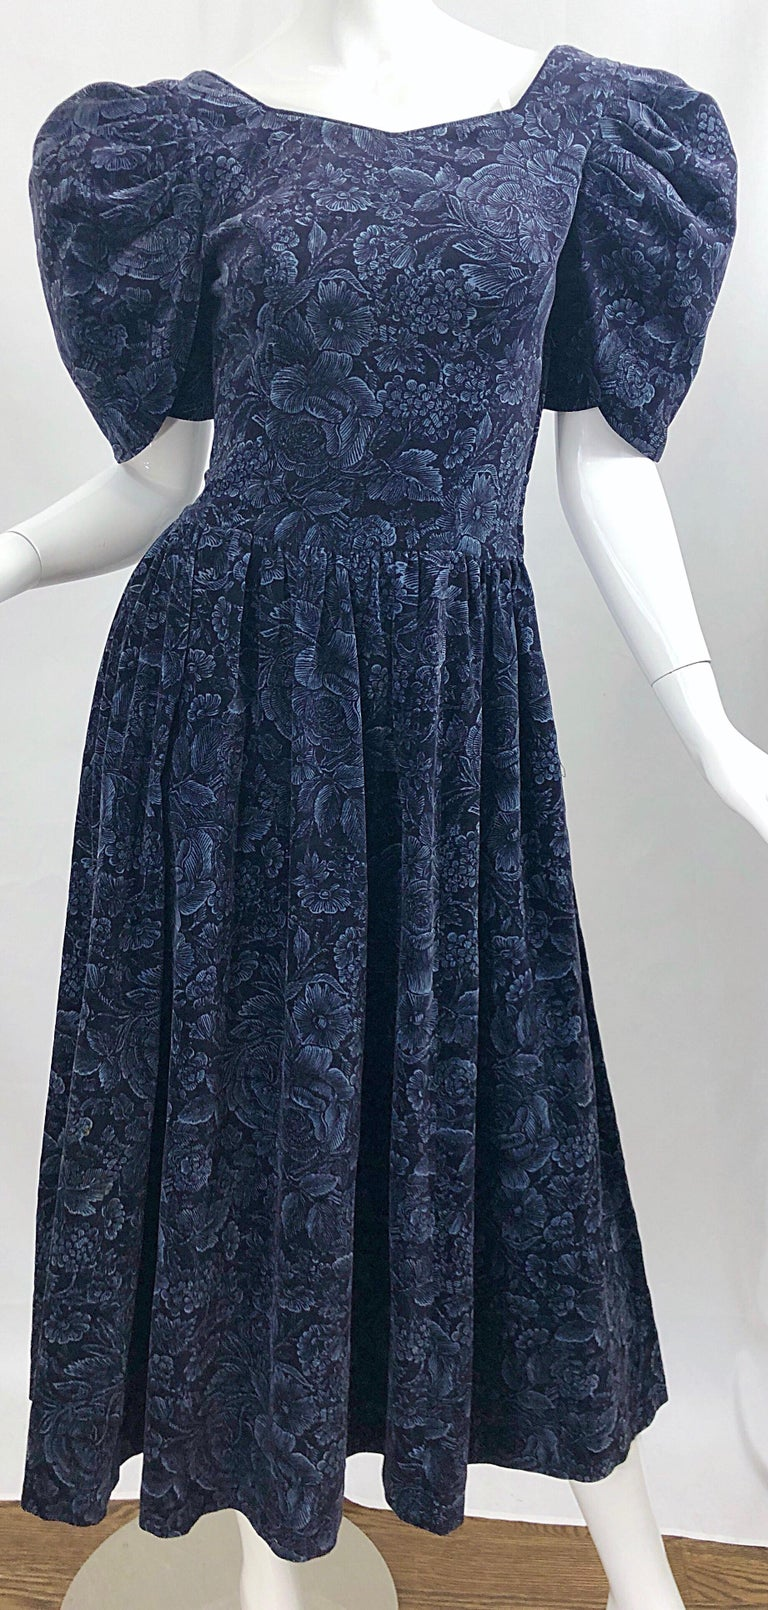 1980s Laura Ashley Batsheva Navy Blue Velvet Open Back Vintage 80s Midi Dress  For Sale 10